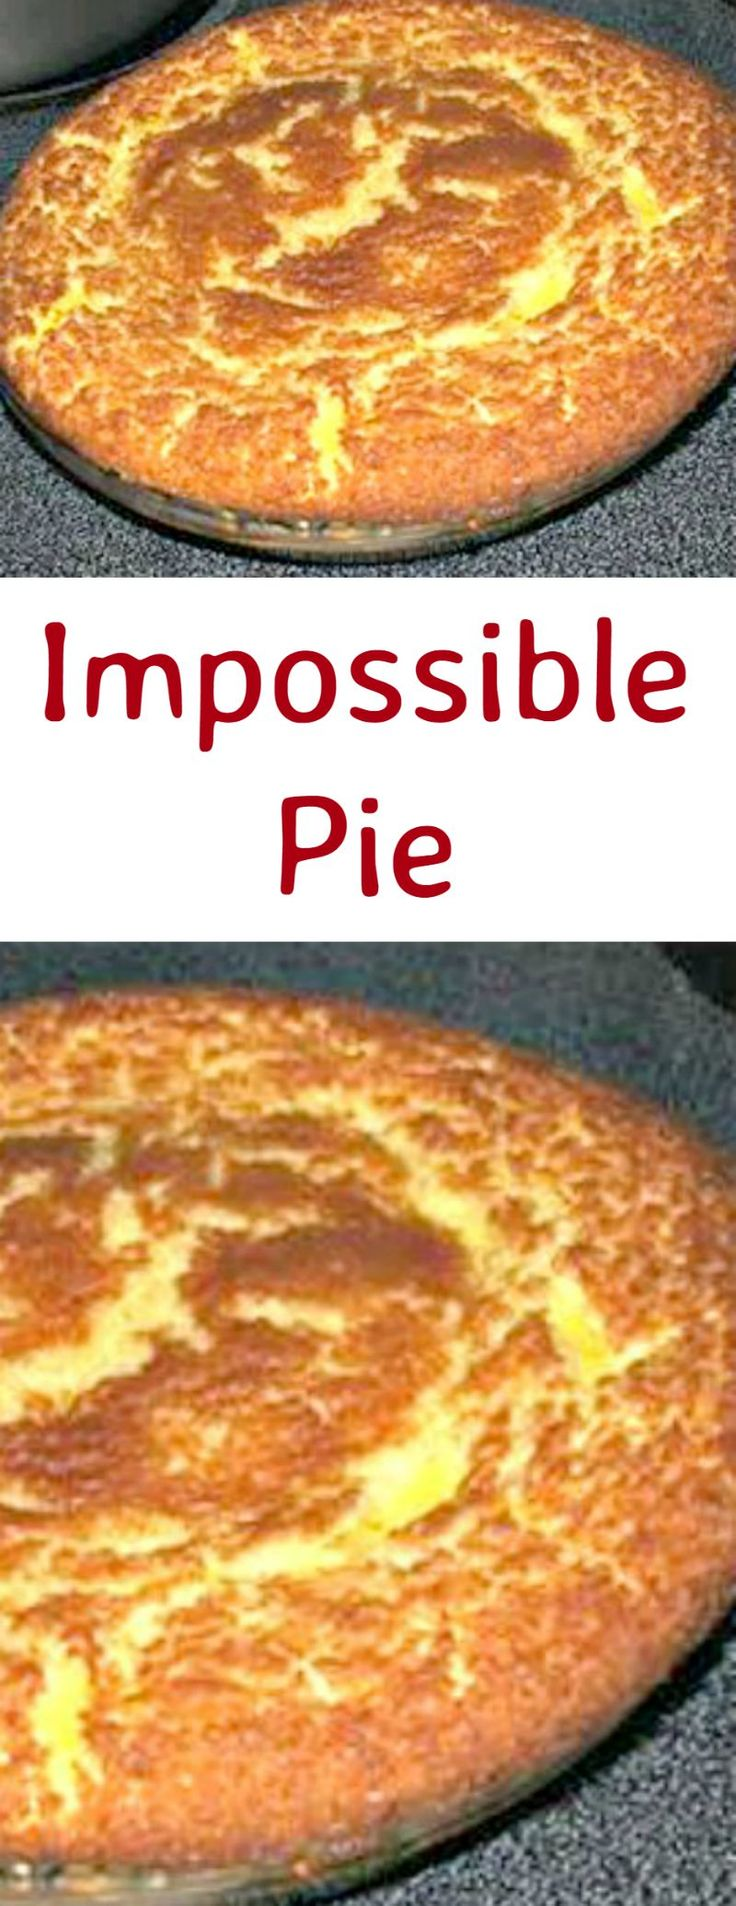 What! Another pinner wrote:Impossible Pie. A very easy recipe, makes its own crust and tastes like a coconut cream pie!